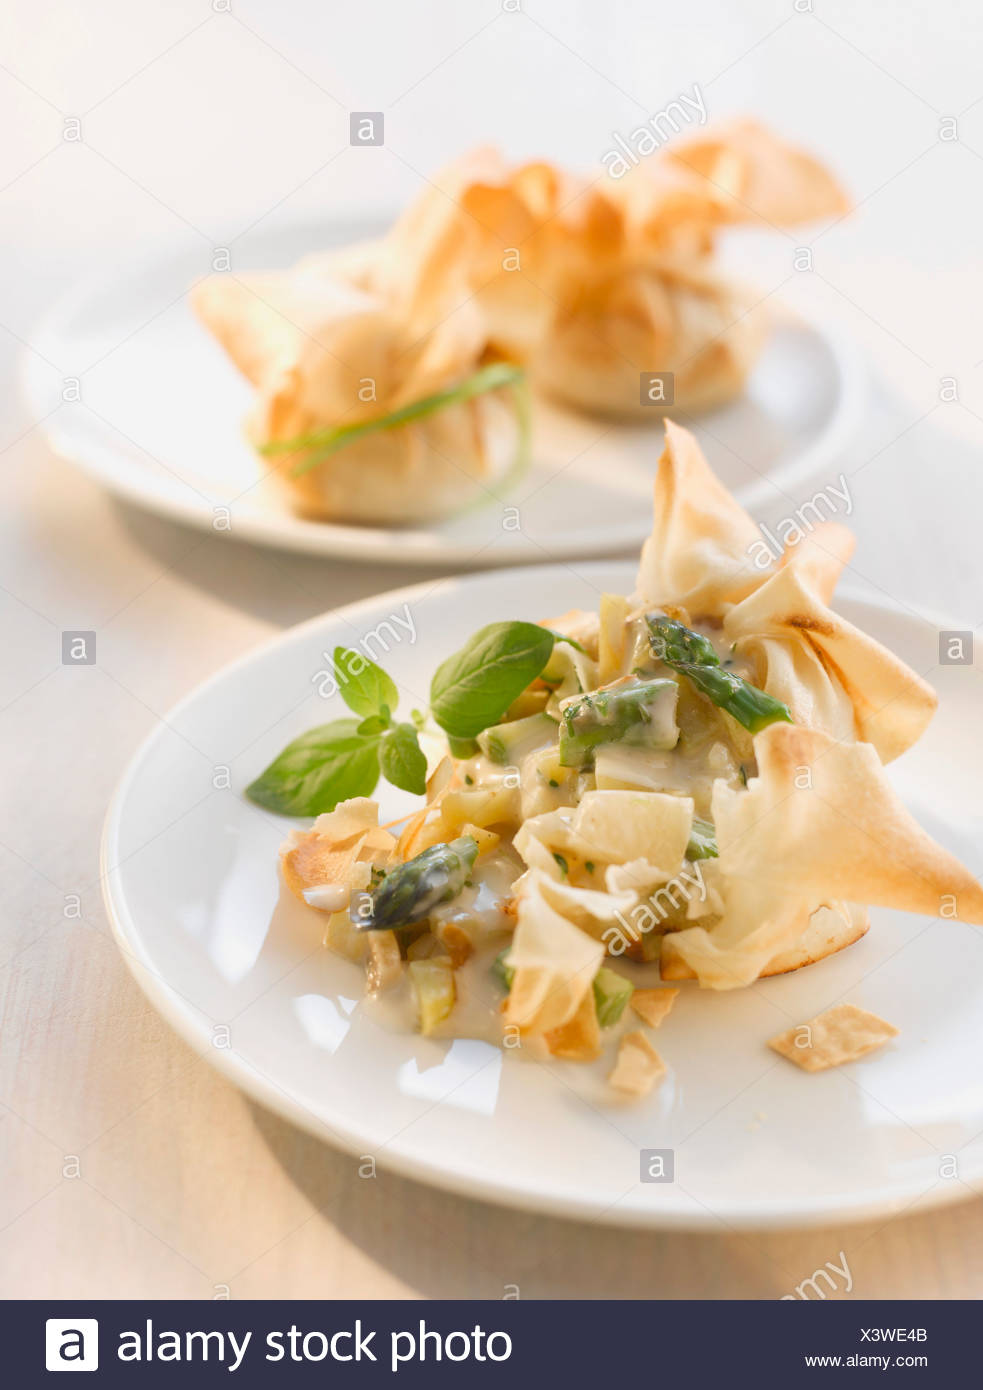 Stuffed dim sum with sweet chili sauce on plate - Stock Image